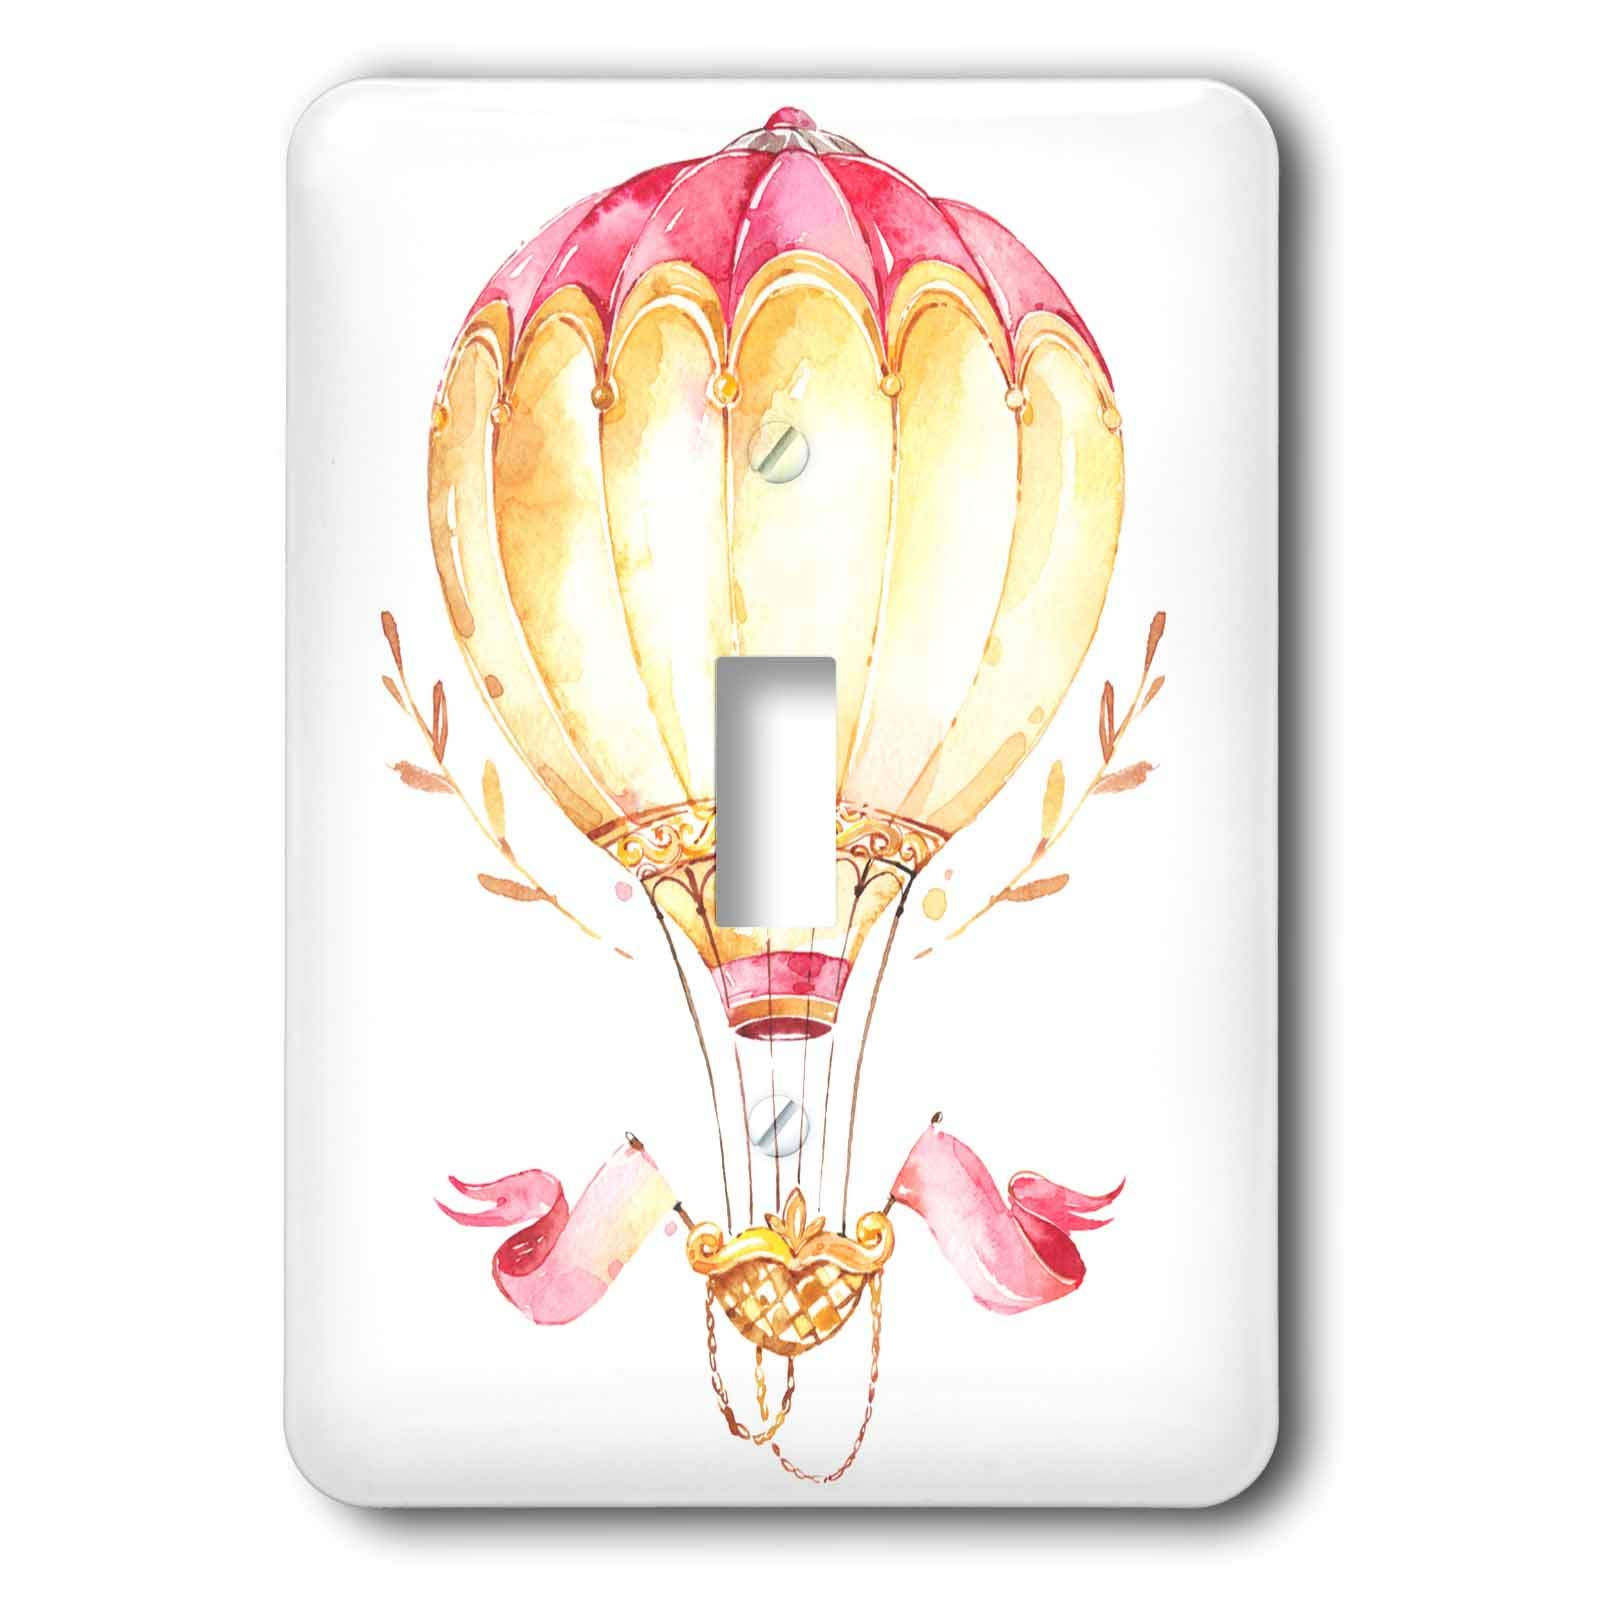 3dRose Anne Marie Baugh - Illustrations - Fancy Pink and Sepia Image Of Watercolor Hot Air Balloon Illustration - Light Switch Covers - single toggle switch (lsp_295510_1)